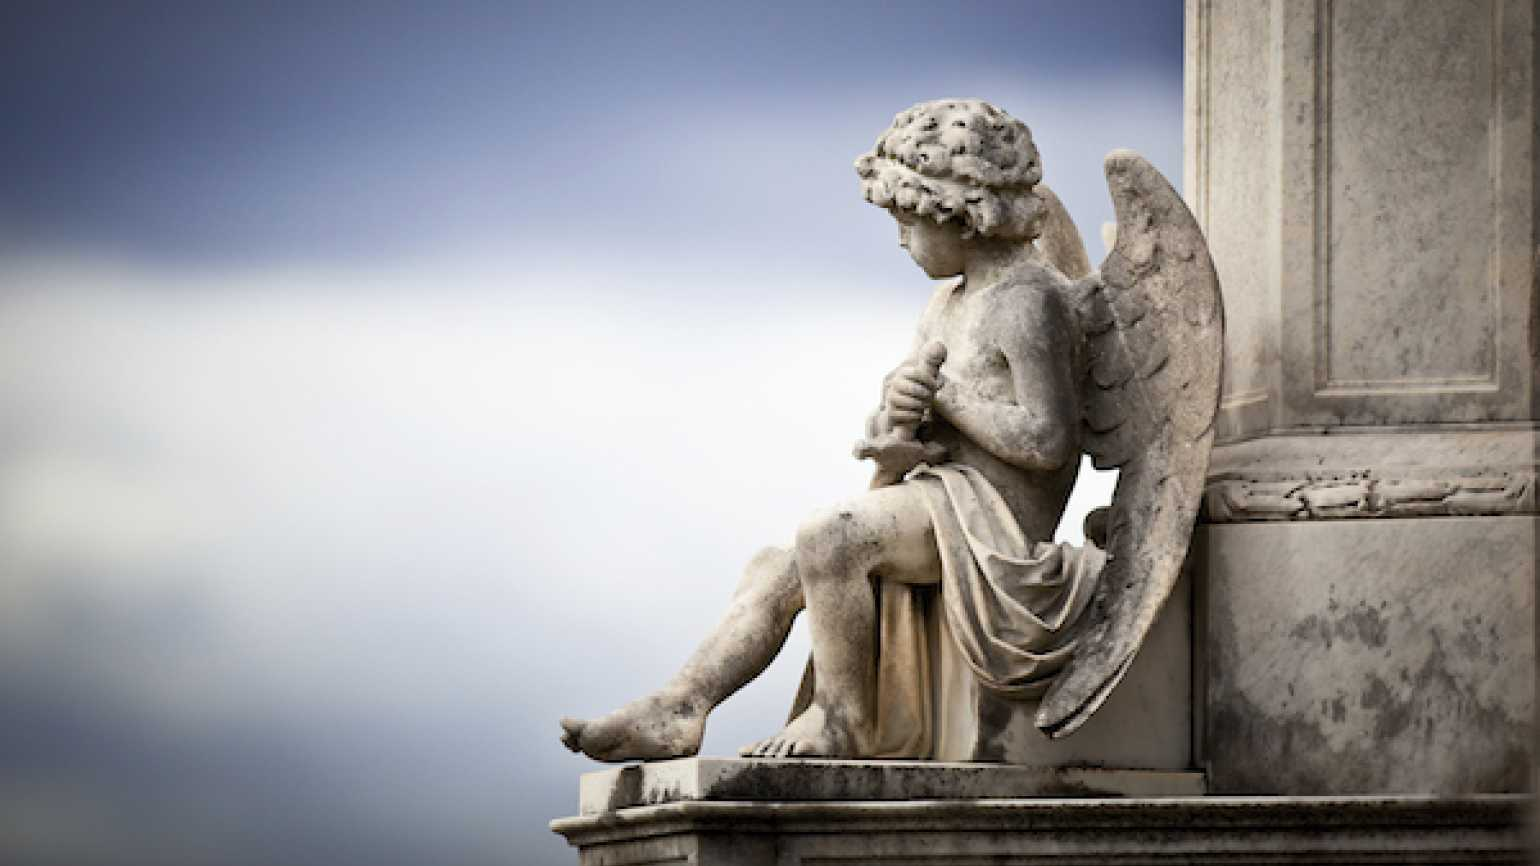 A doctor, a man of science, receives proof that angels exist.